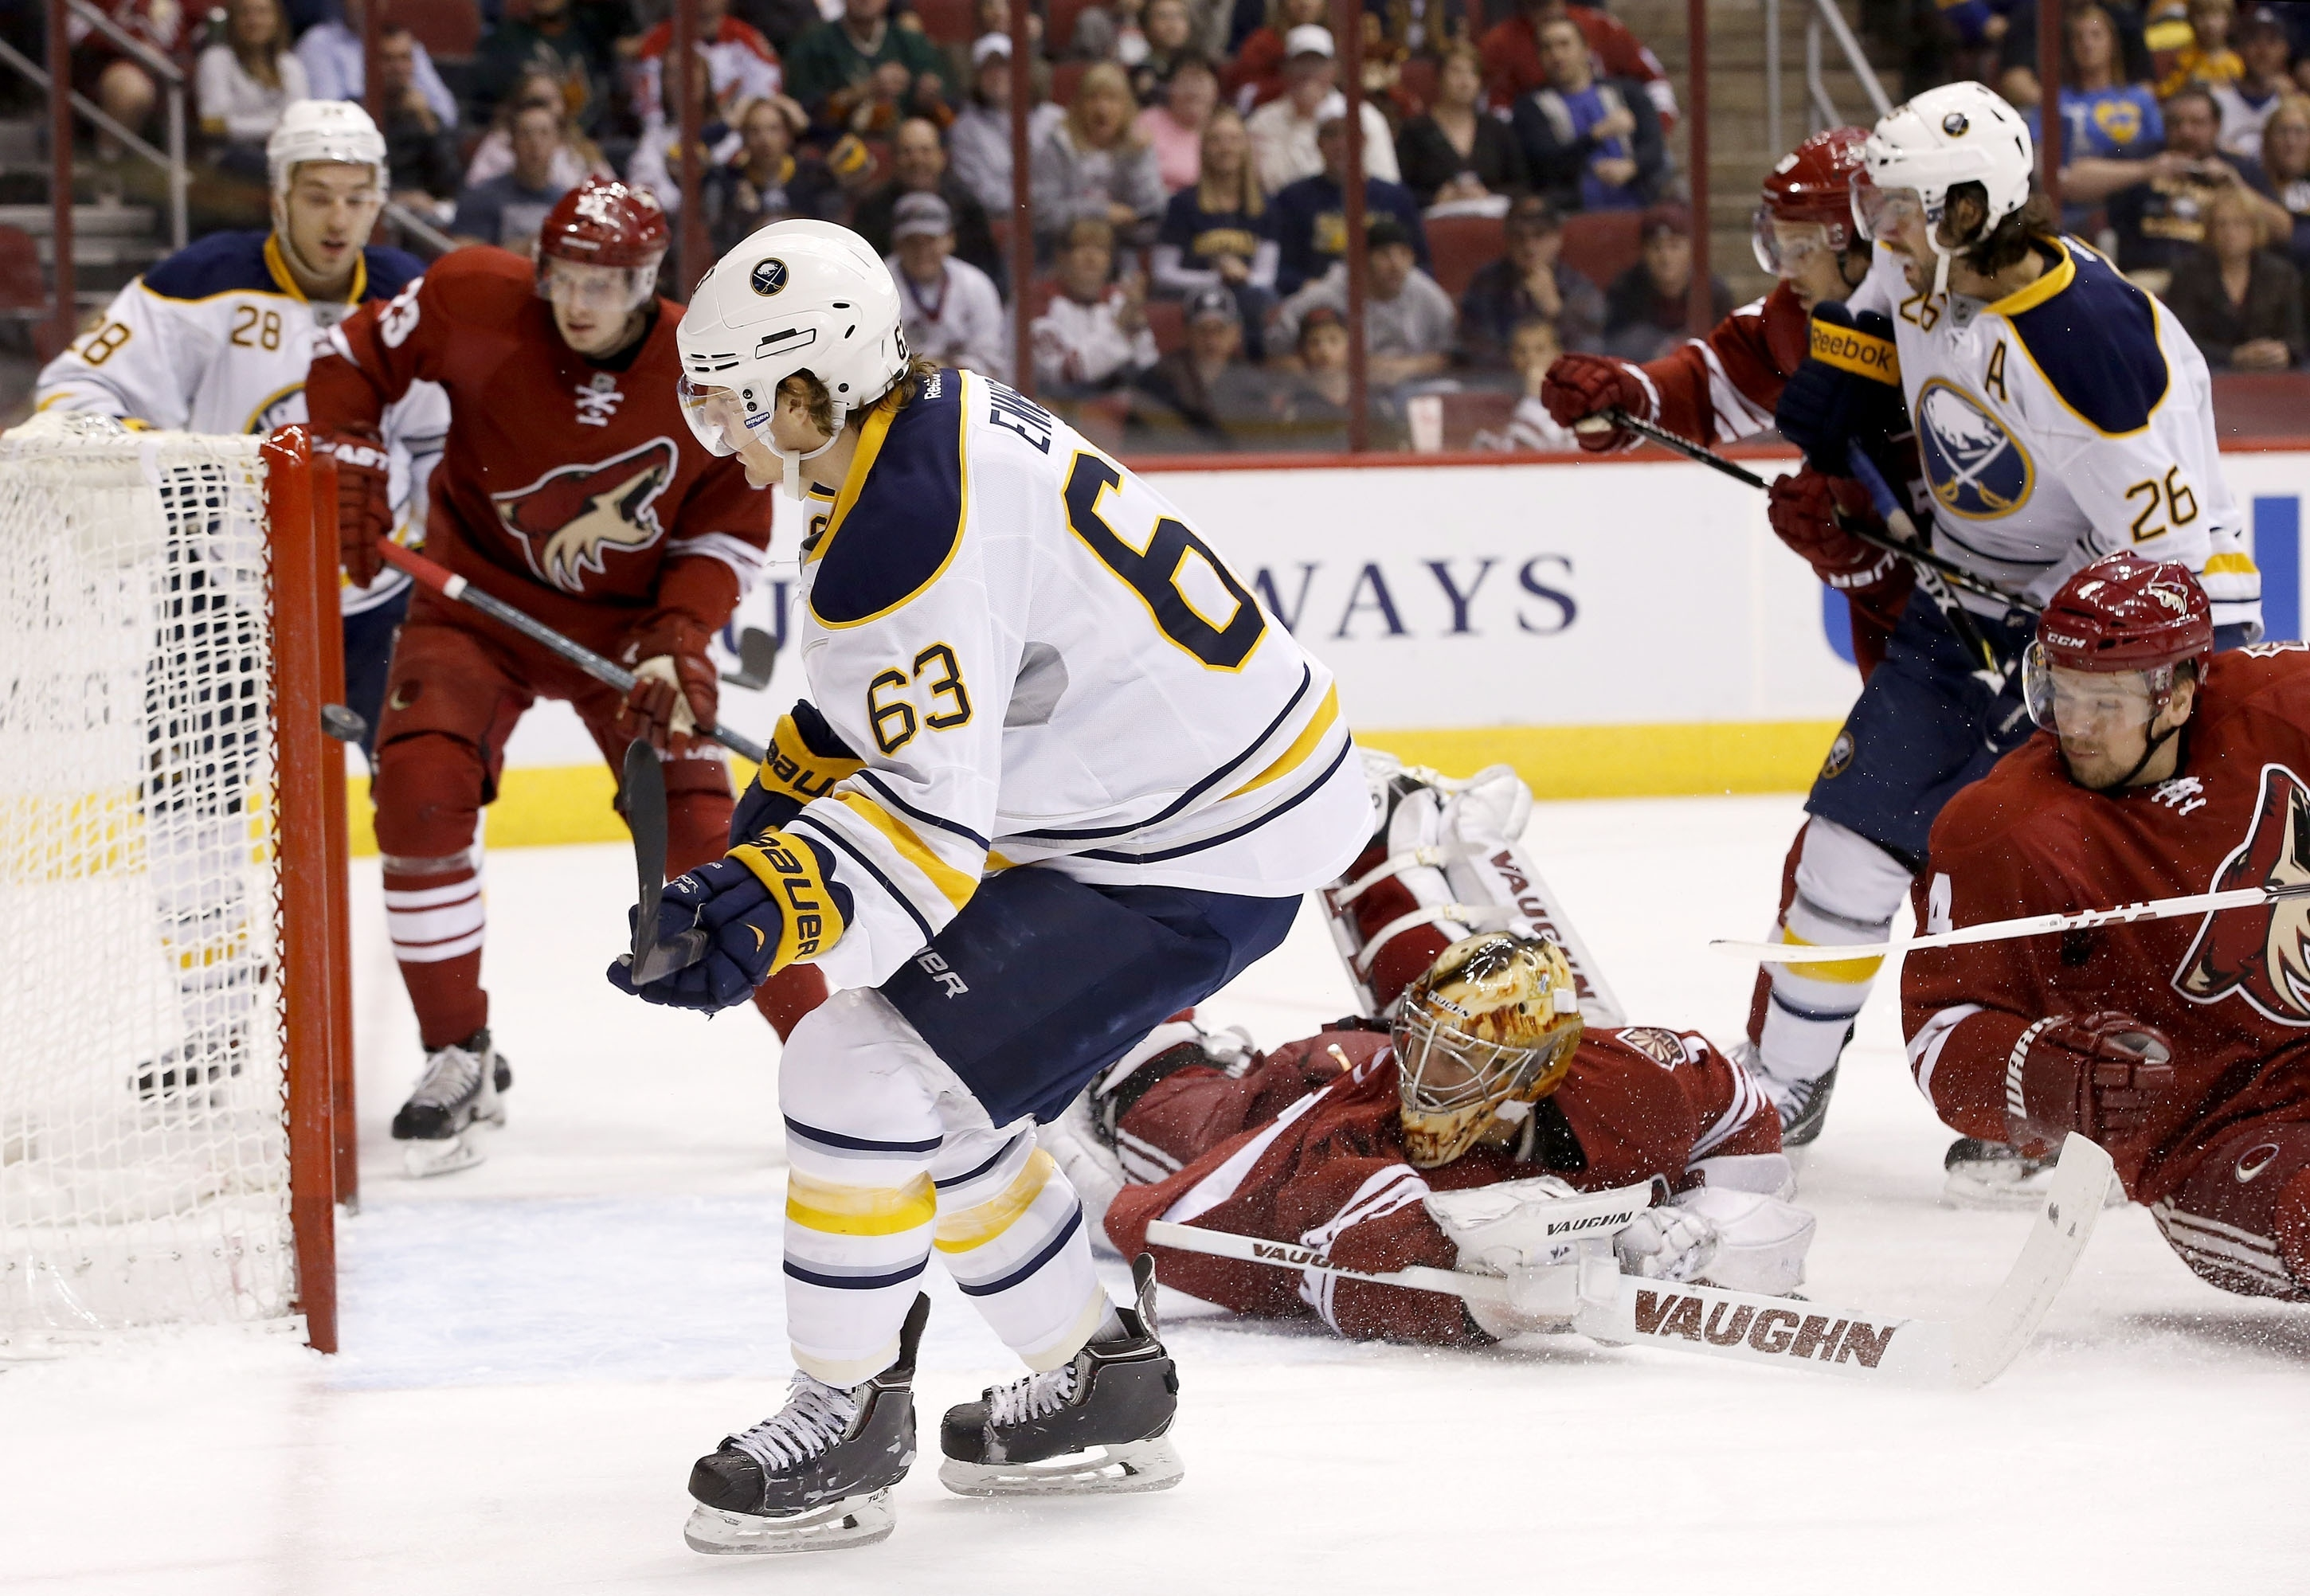 Buffalo's Tyler Ennis gets the puck past a diving Thomas Greiss, the Coyotes' goaltender, to score the Sabres' first goal.